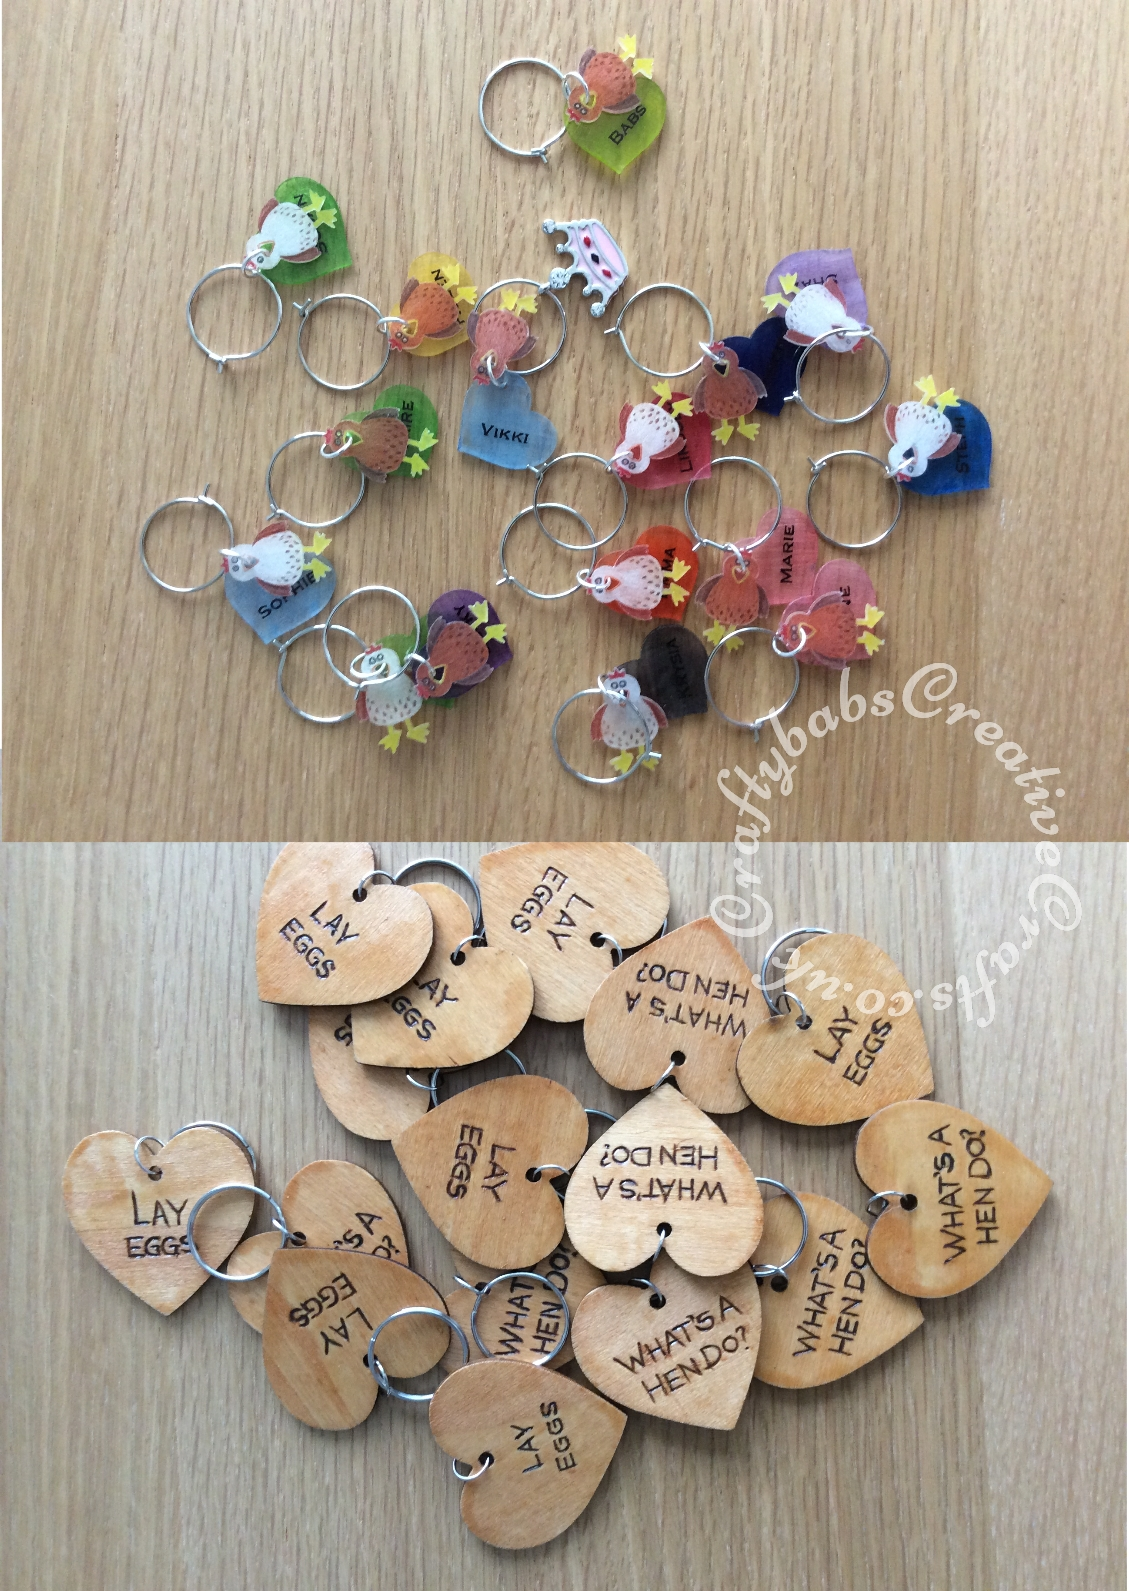 Wooden Heart tags and key rings purchased blank and then personalised with a pyrography tool then varnished. Hens for wine glass charms die cut from shrink plastic using the Sizzix Originals bird die, hearts cut with Sizzix originals heart die and coloured with pencil crayon before shrinking. - craftybabscreativecrafts.co.uk